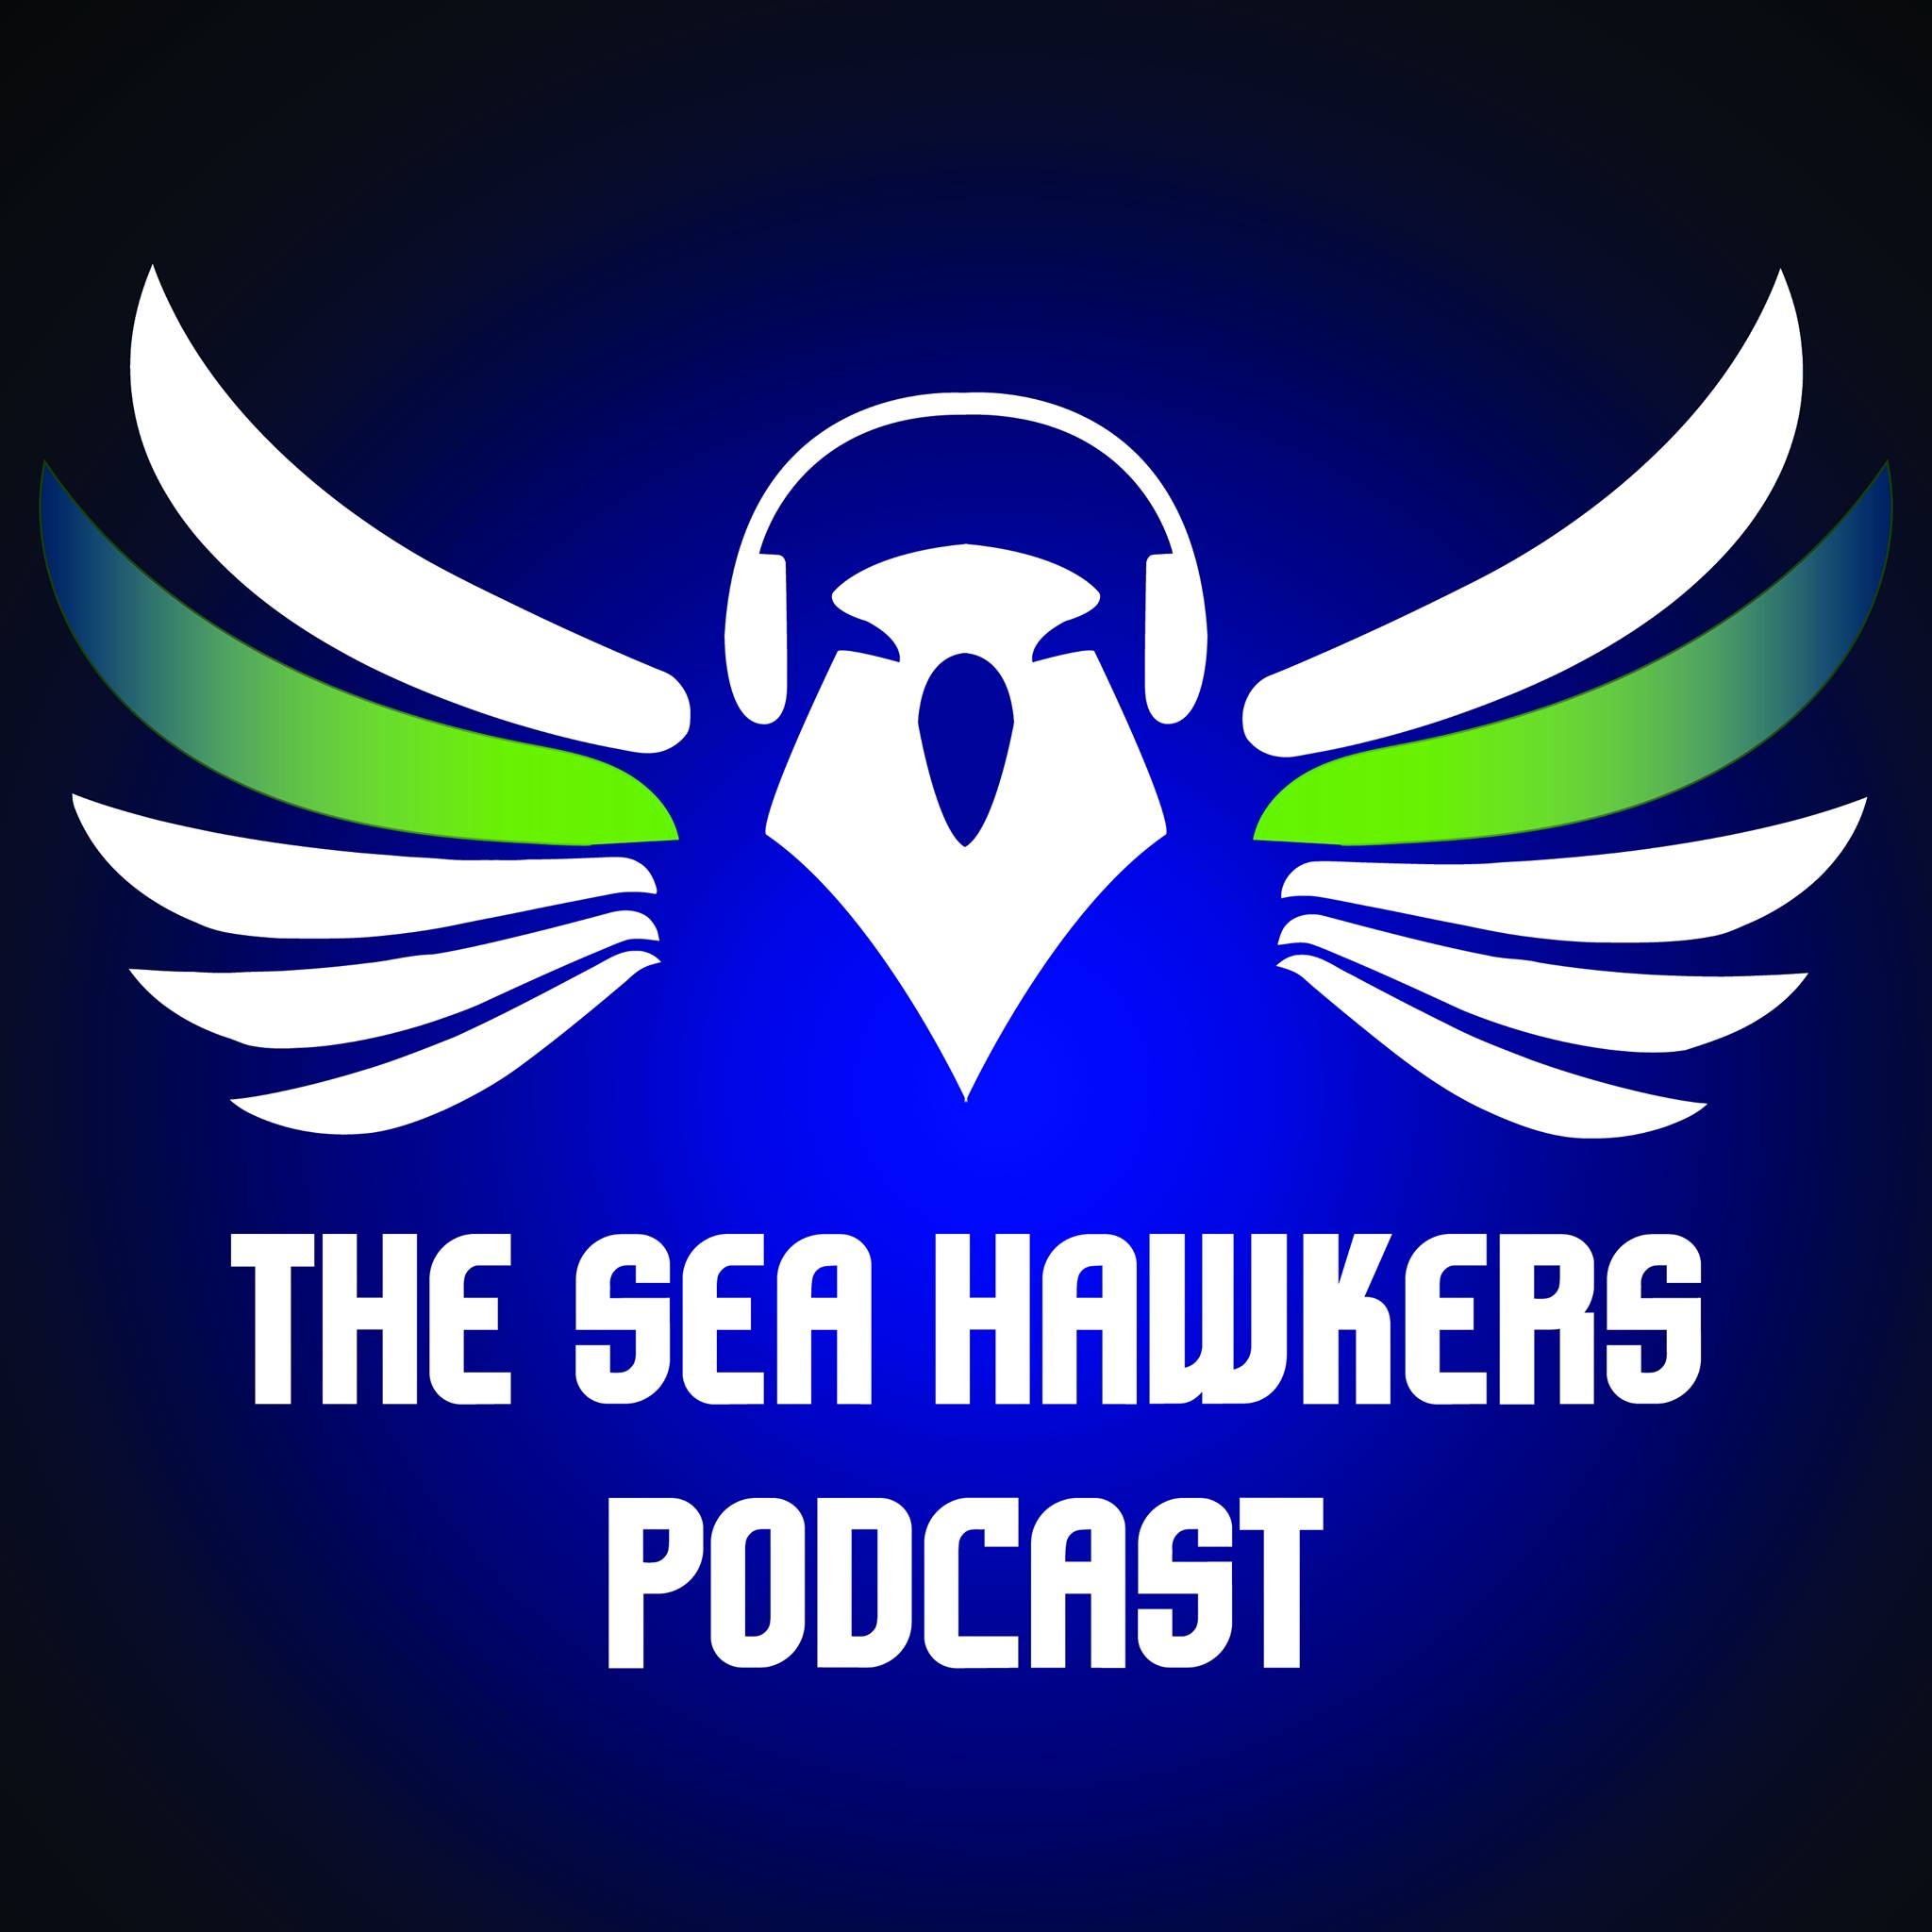 Sea Hawkers Podcast show art